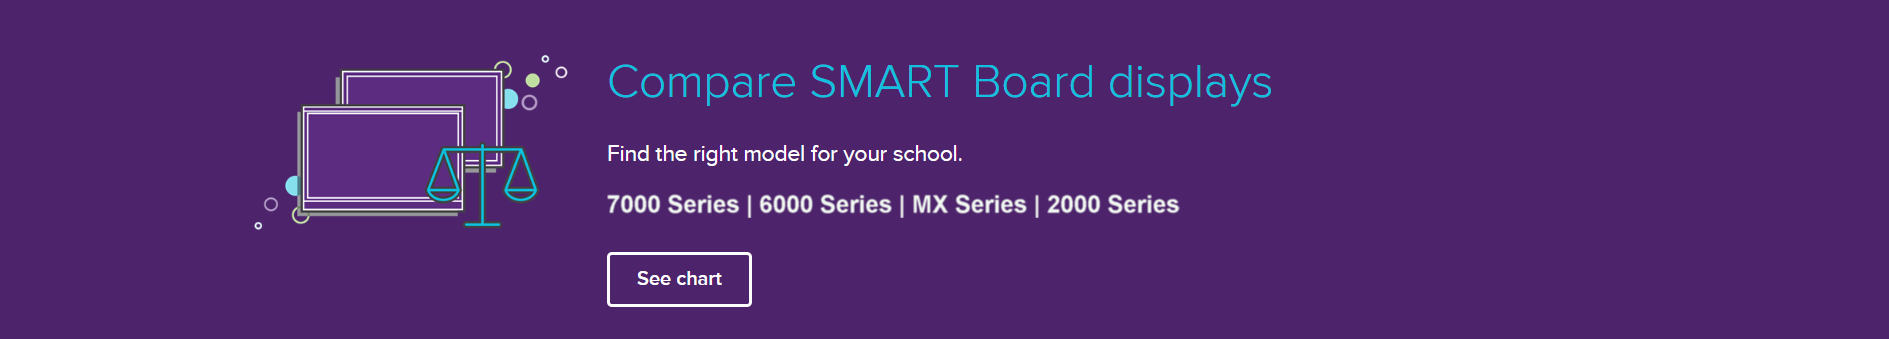 Compare Smart Boards